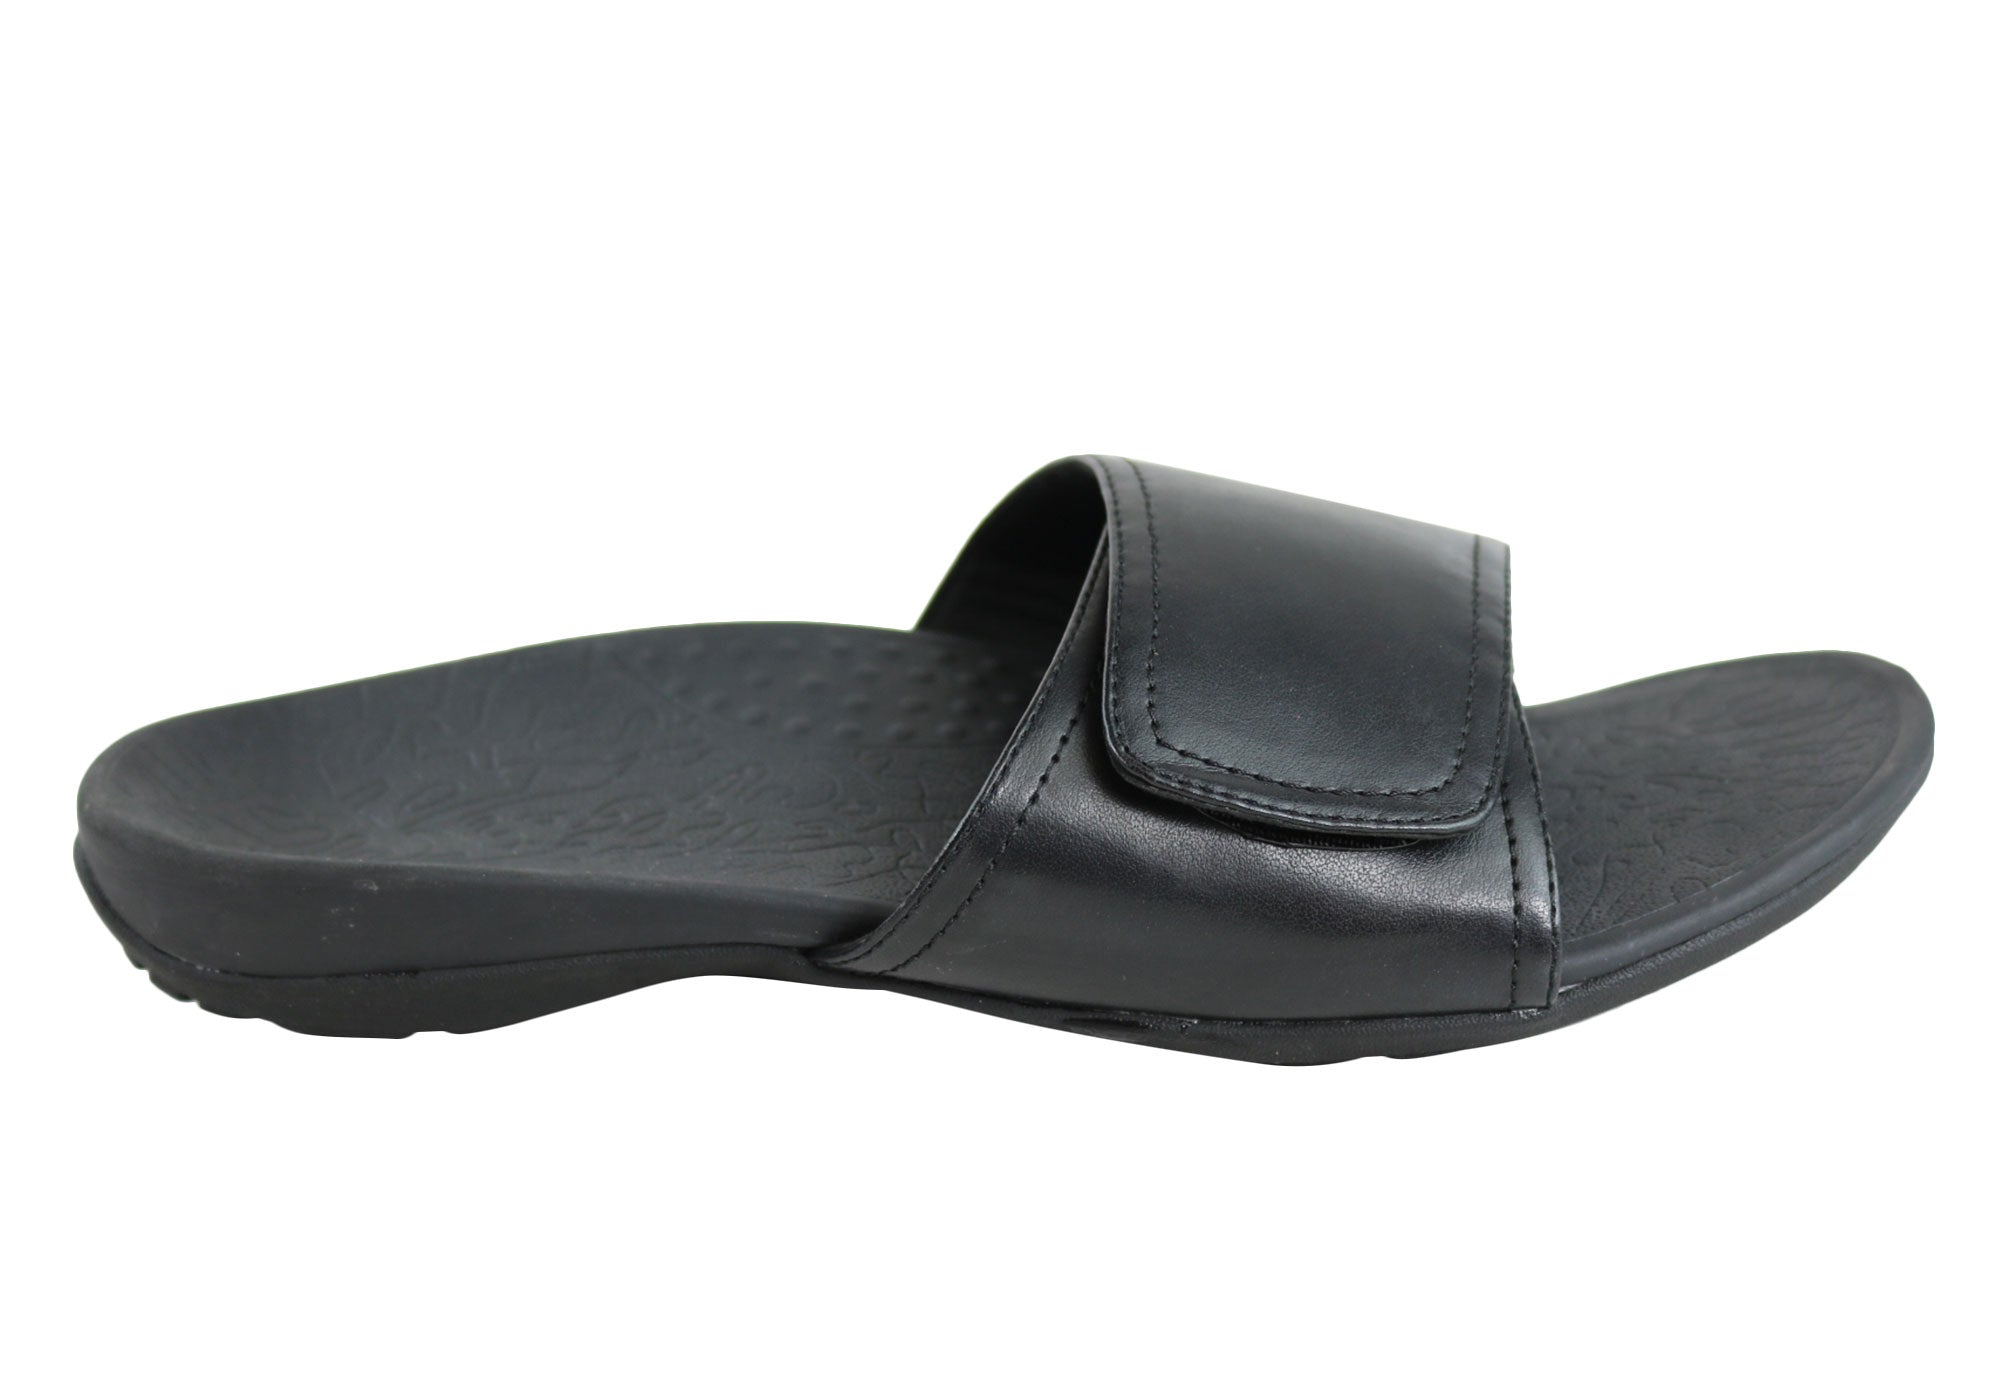 2d490a963b13 Home Axign Slide Mens Comfortable Supportive Orthotic Sandals. Black ...